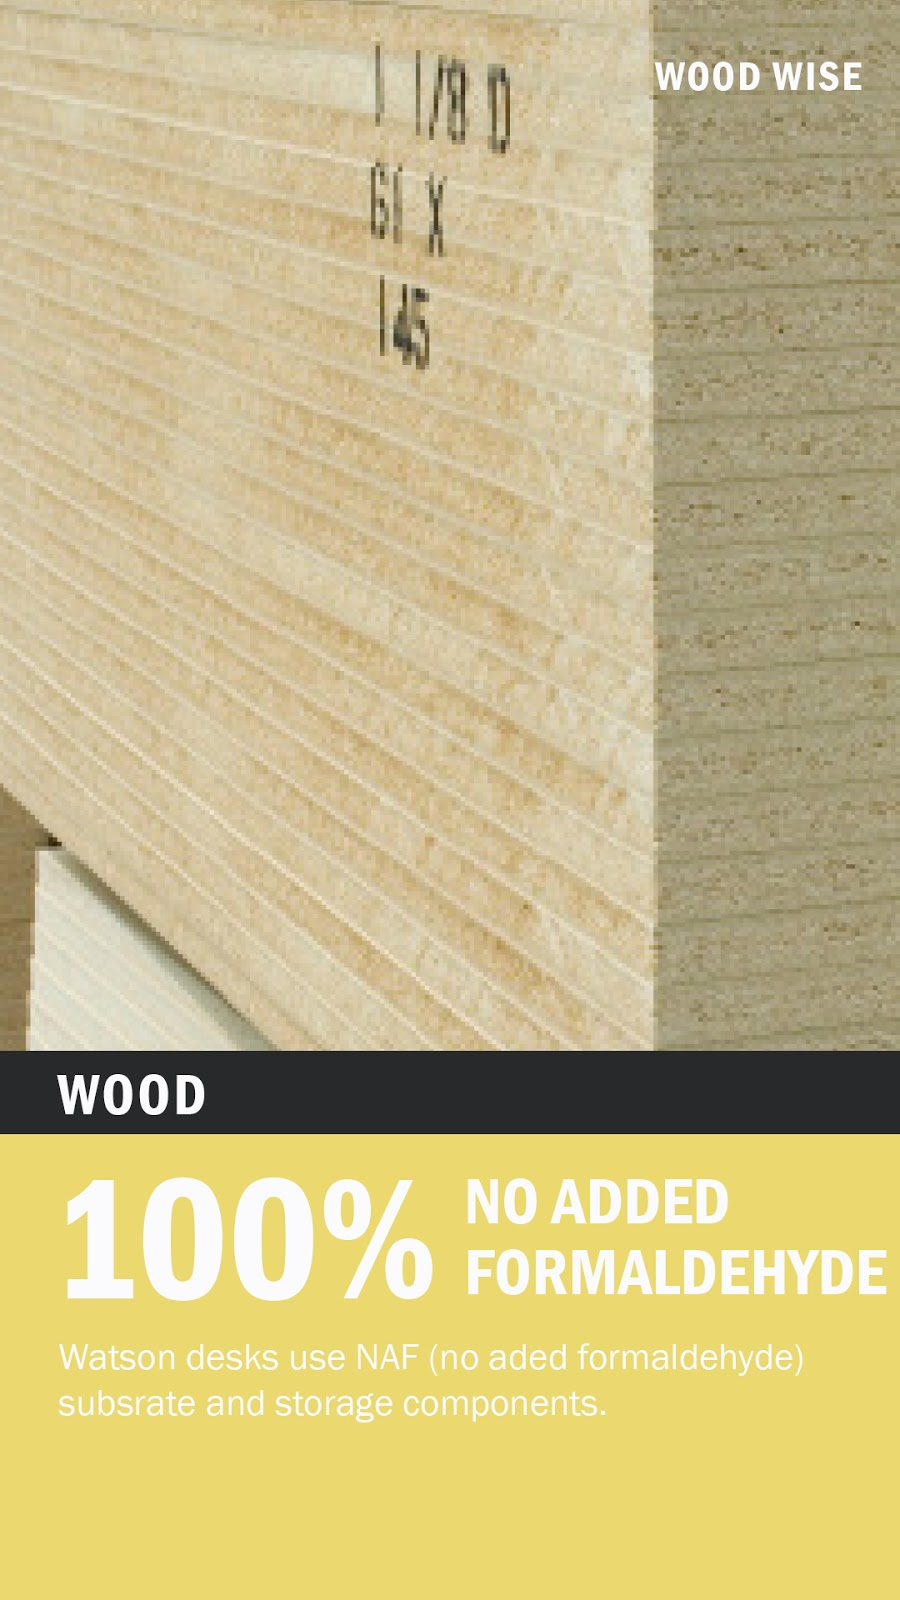 Wood Wise